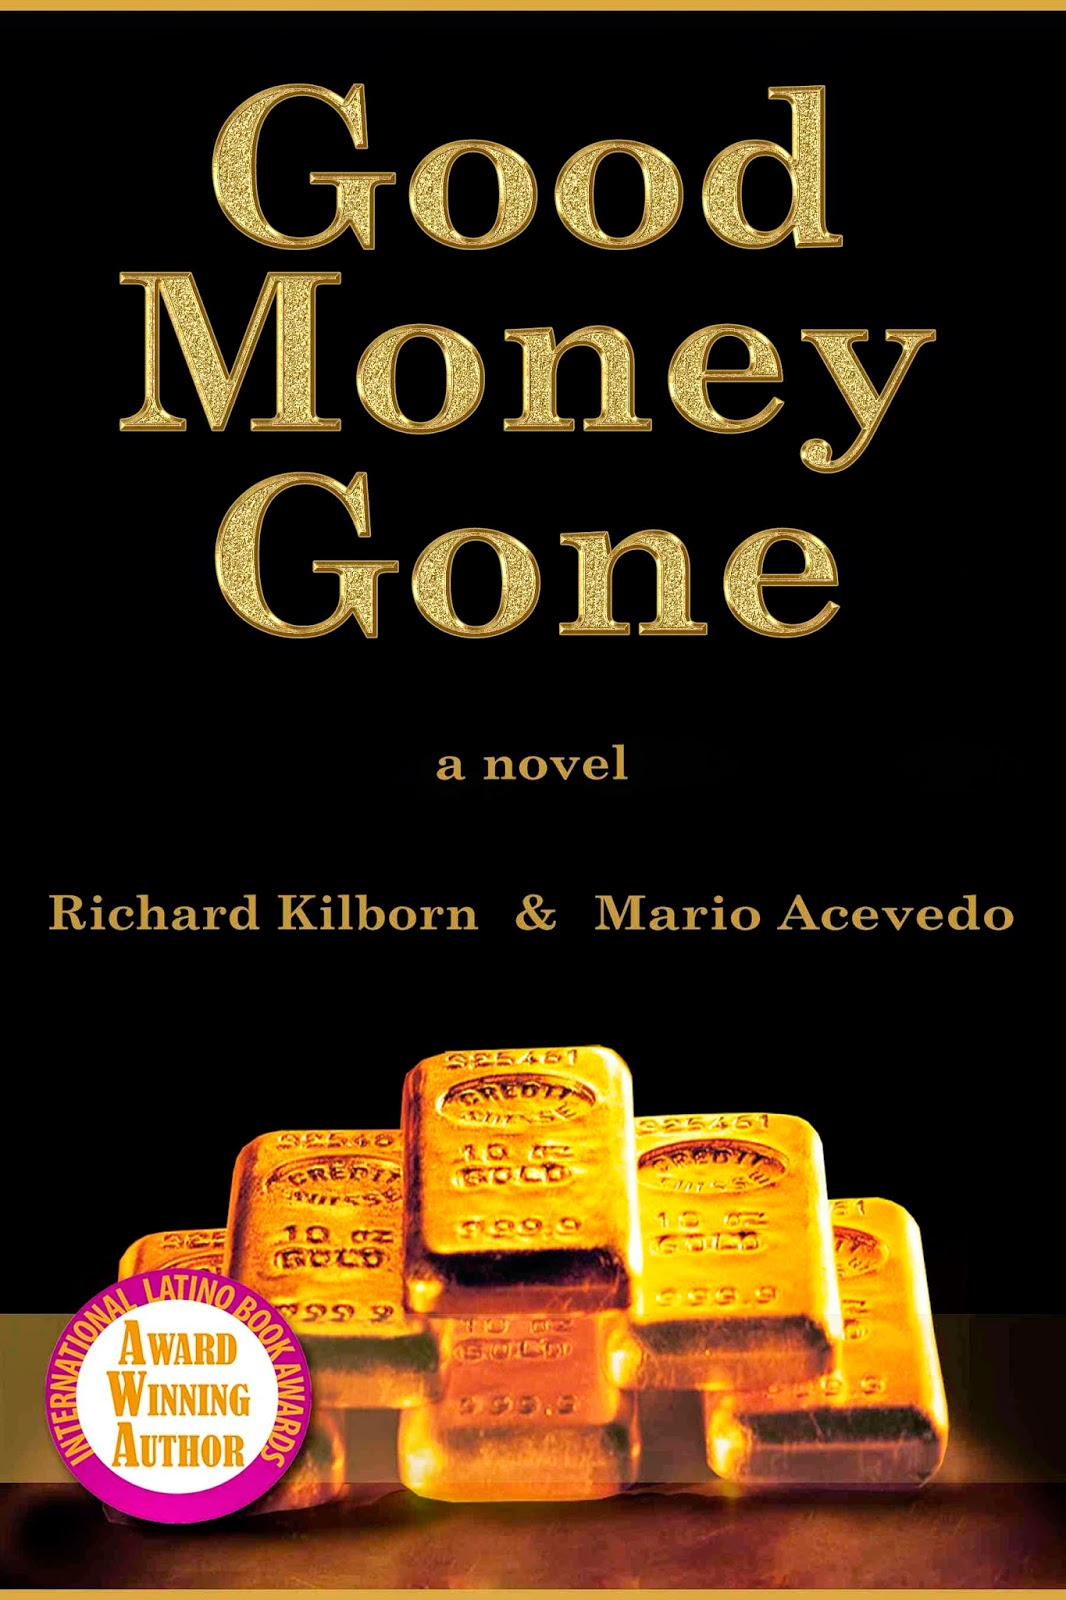 essay on ponzi scheme Check out our top free essays on madoff to help you write your own essay brainiacom join markham talks about bernard madoff's ponzi scheme.